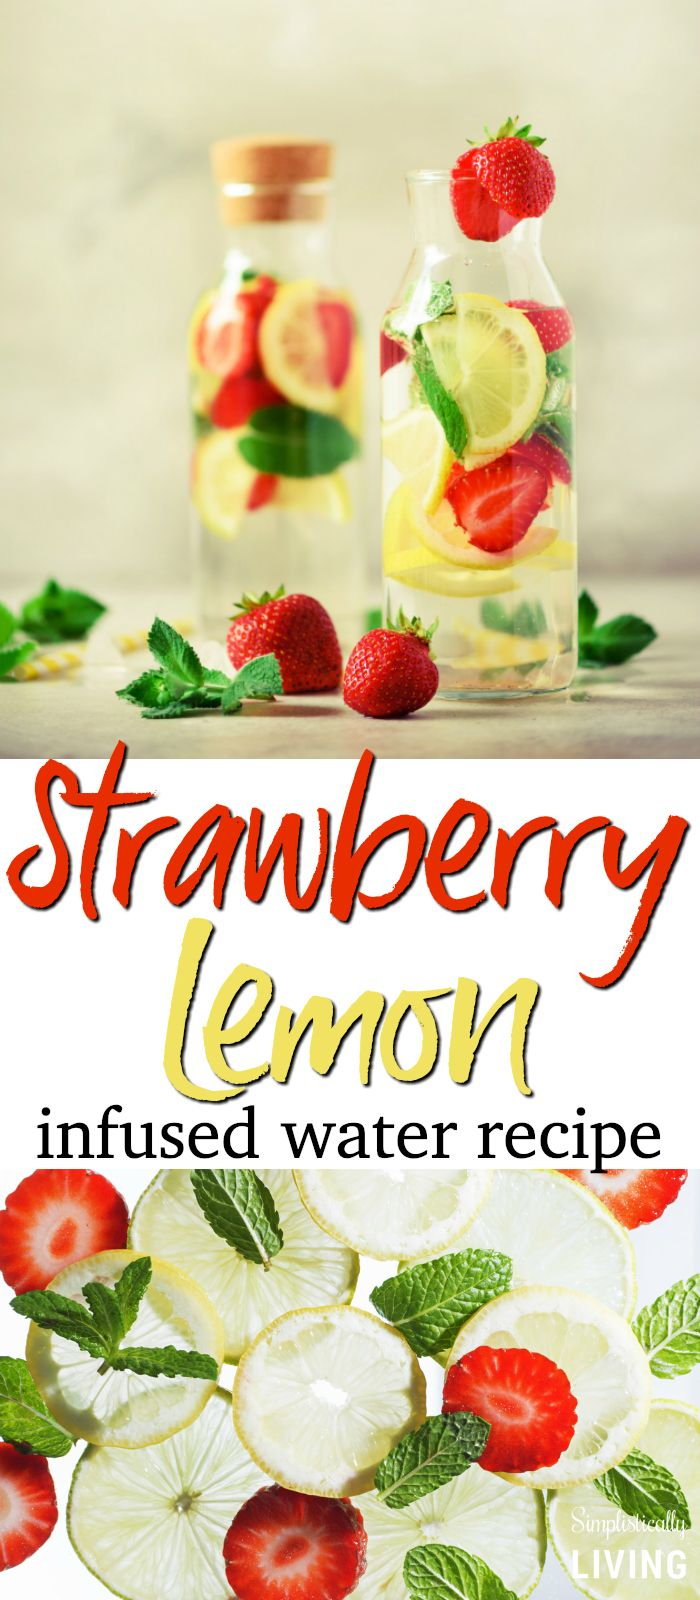 Strawberry Lemon Infused Water Recipe  A Detox Water Recipe